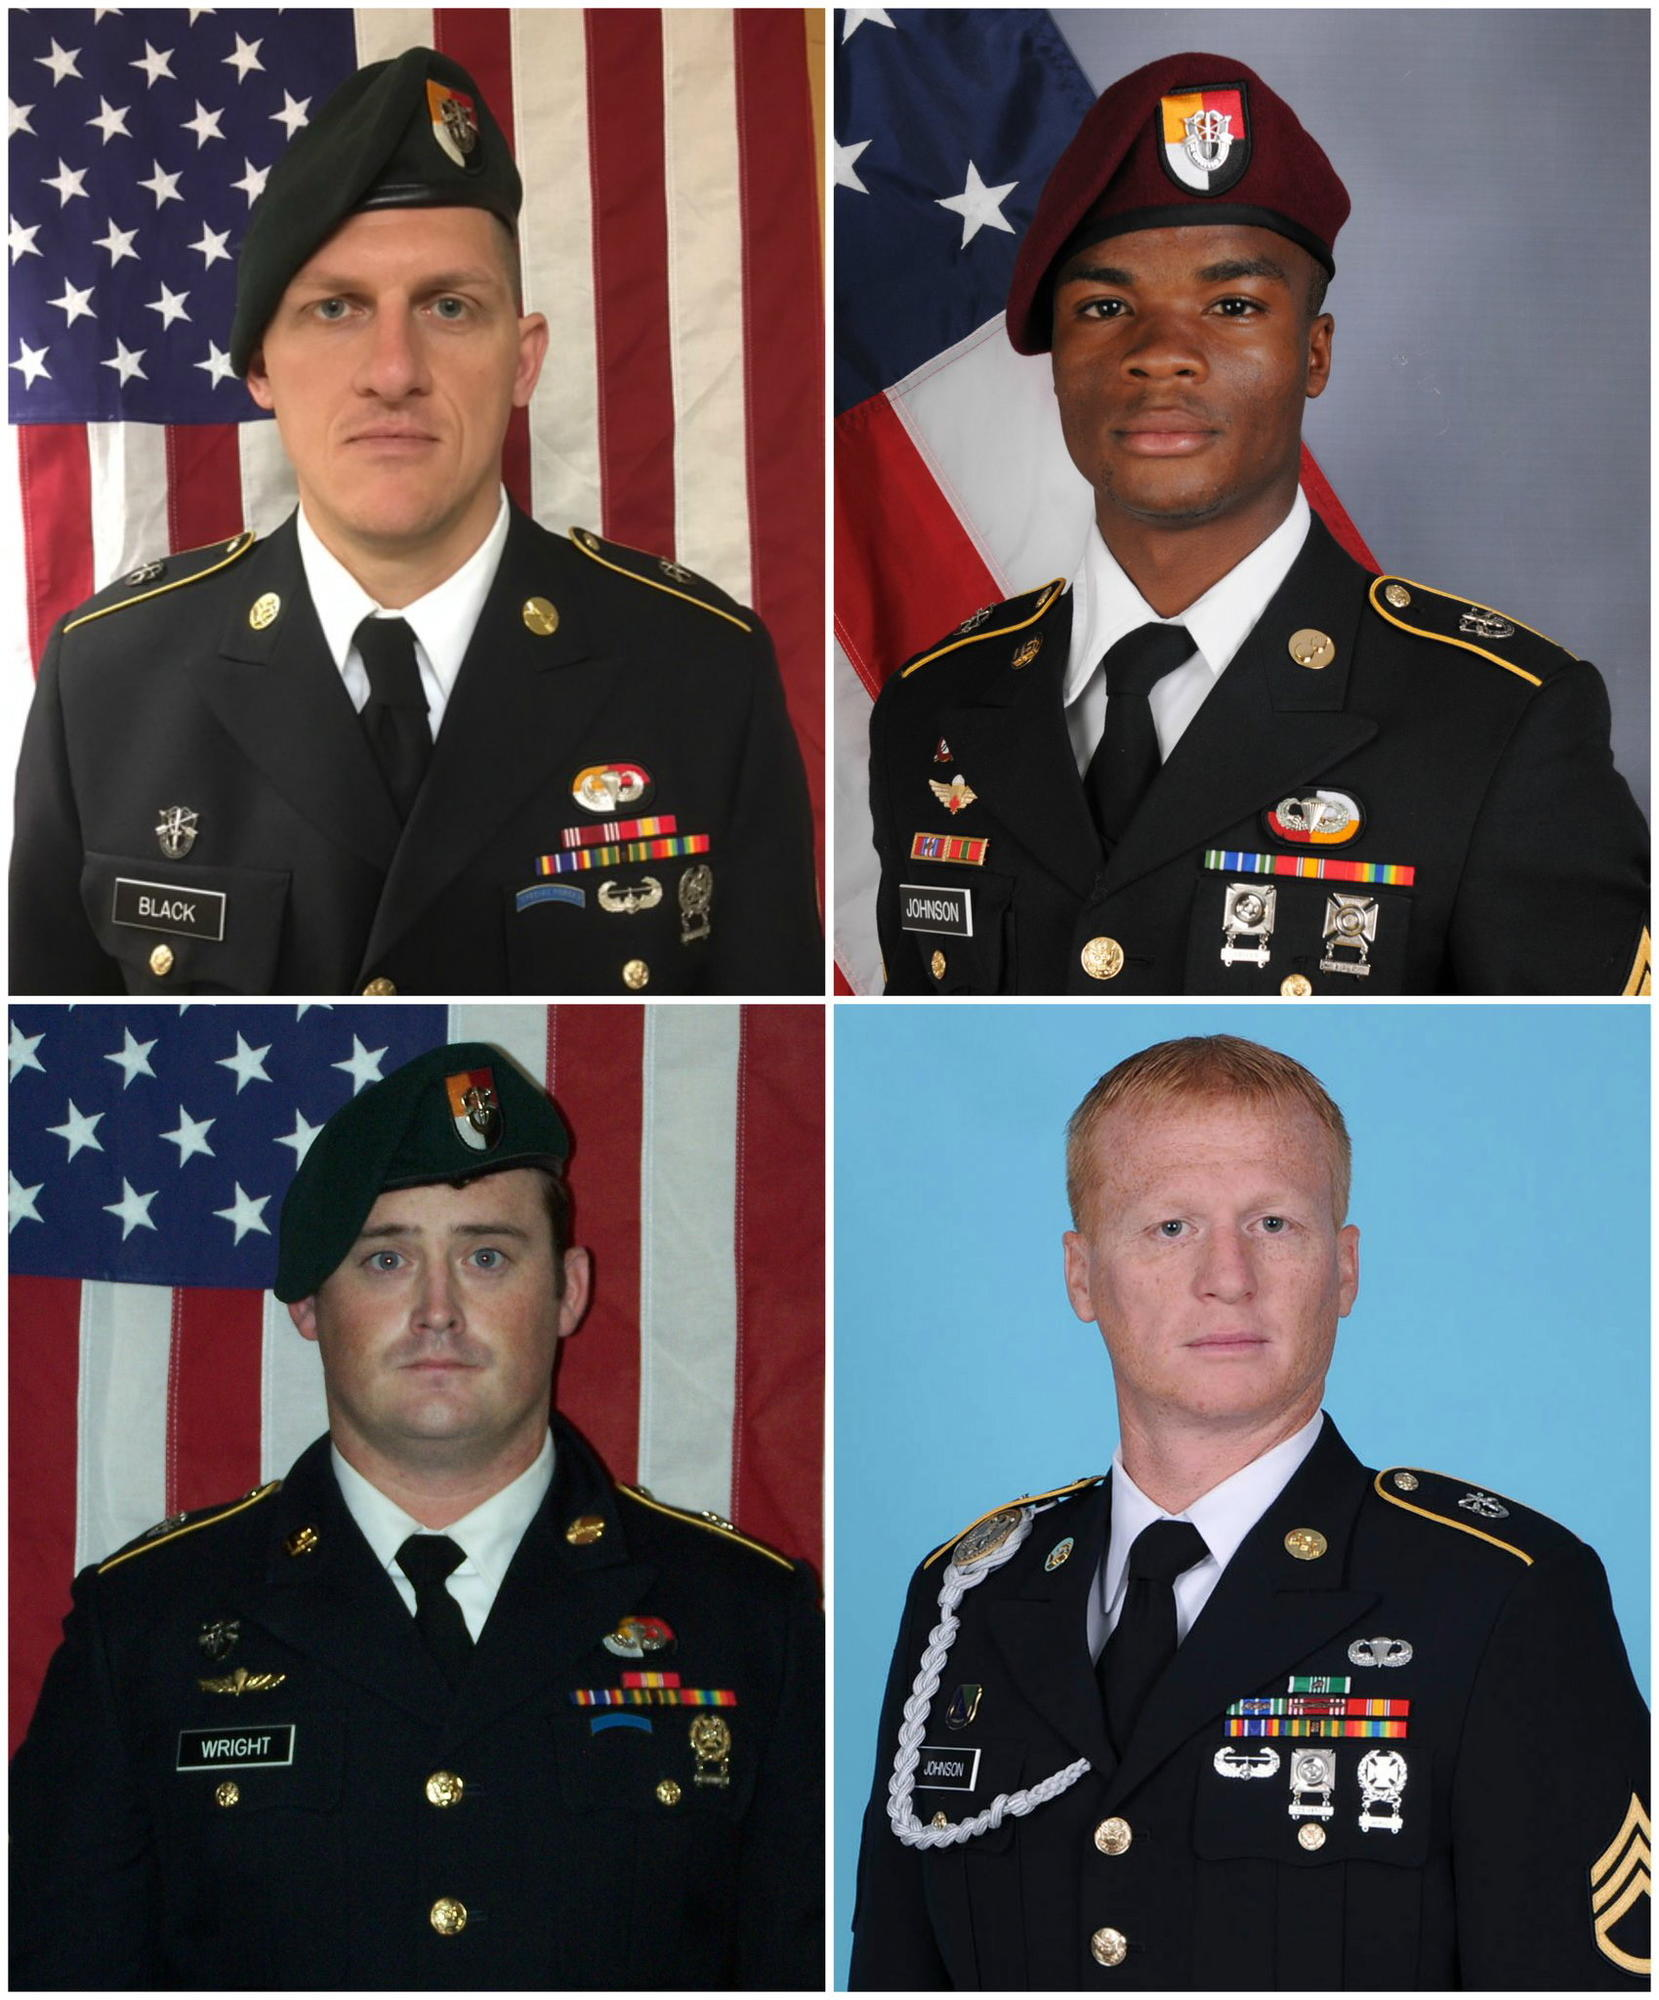 Clockwise from upper left: Army Staff Sgt. Bryan C. Black, 35; Sgt. La David Johnson, 25; Staff Sgt. Jeremiah W. Johnson, 39; and Staff Sgt. Dustin M. Wright, 29.